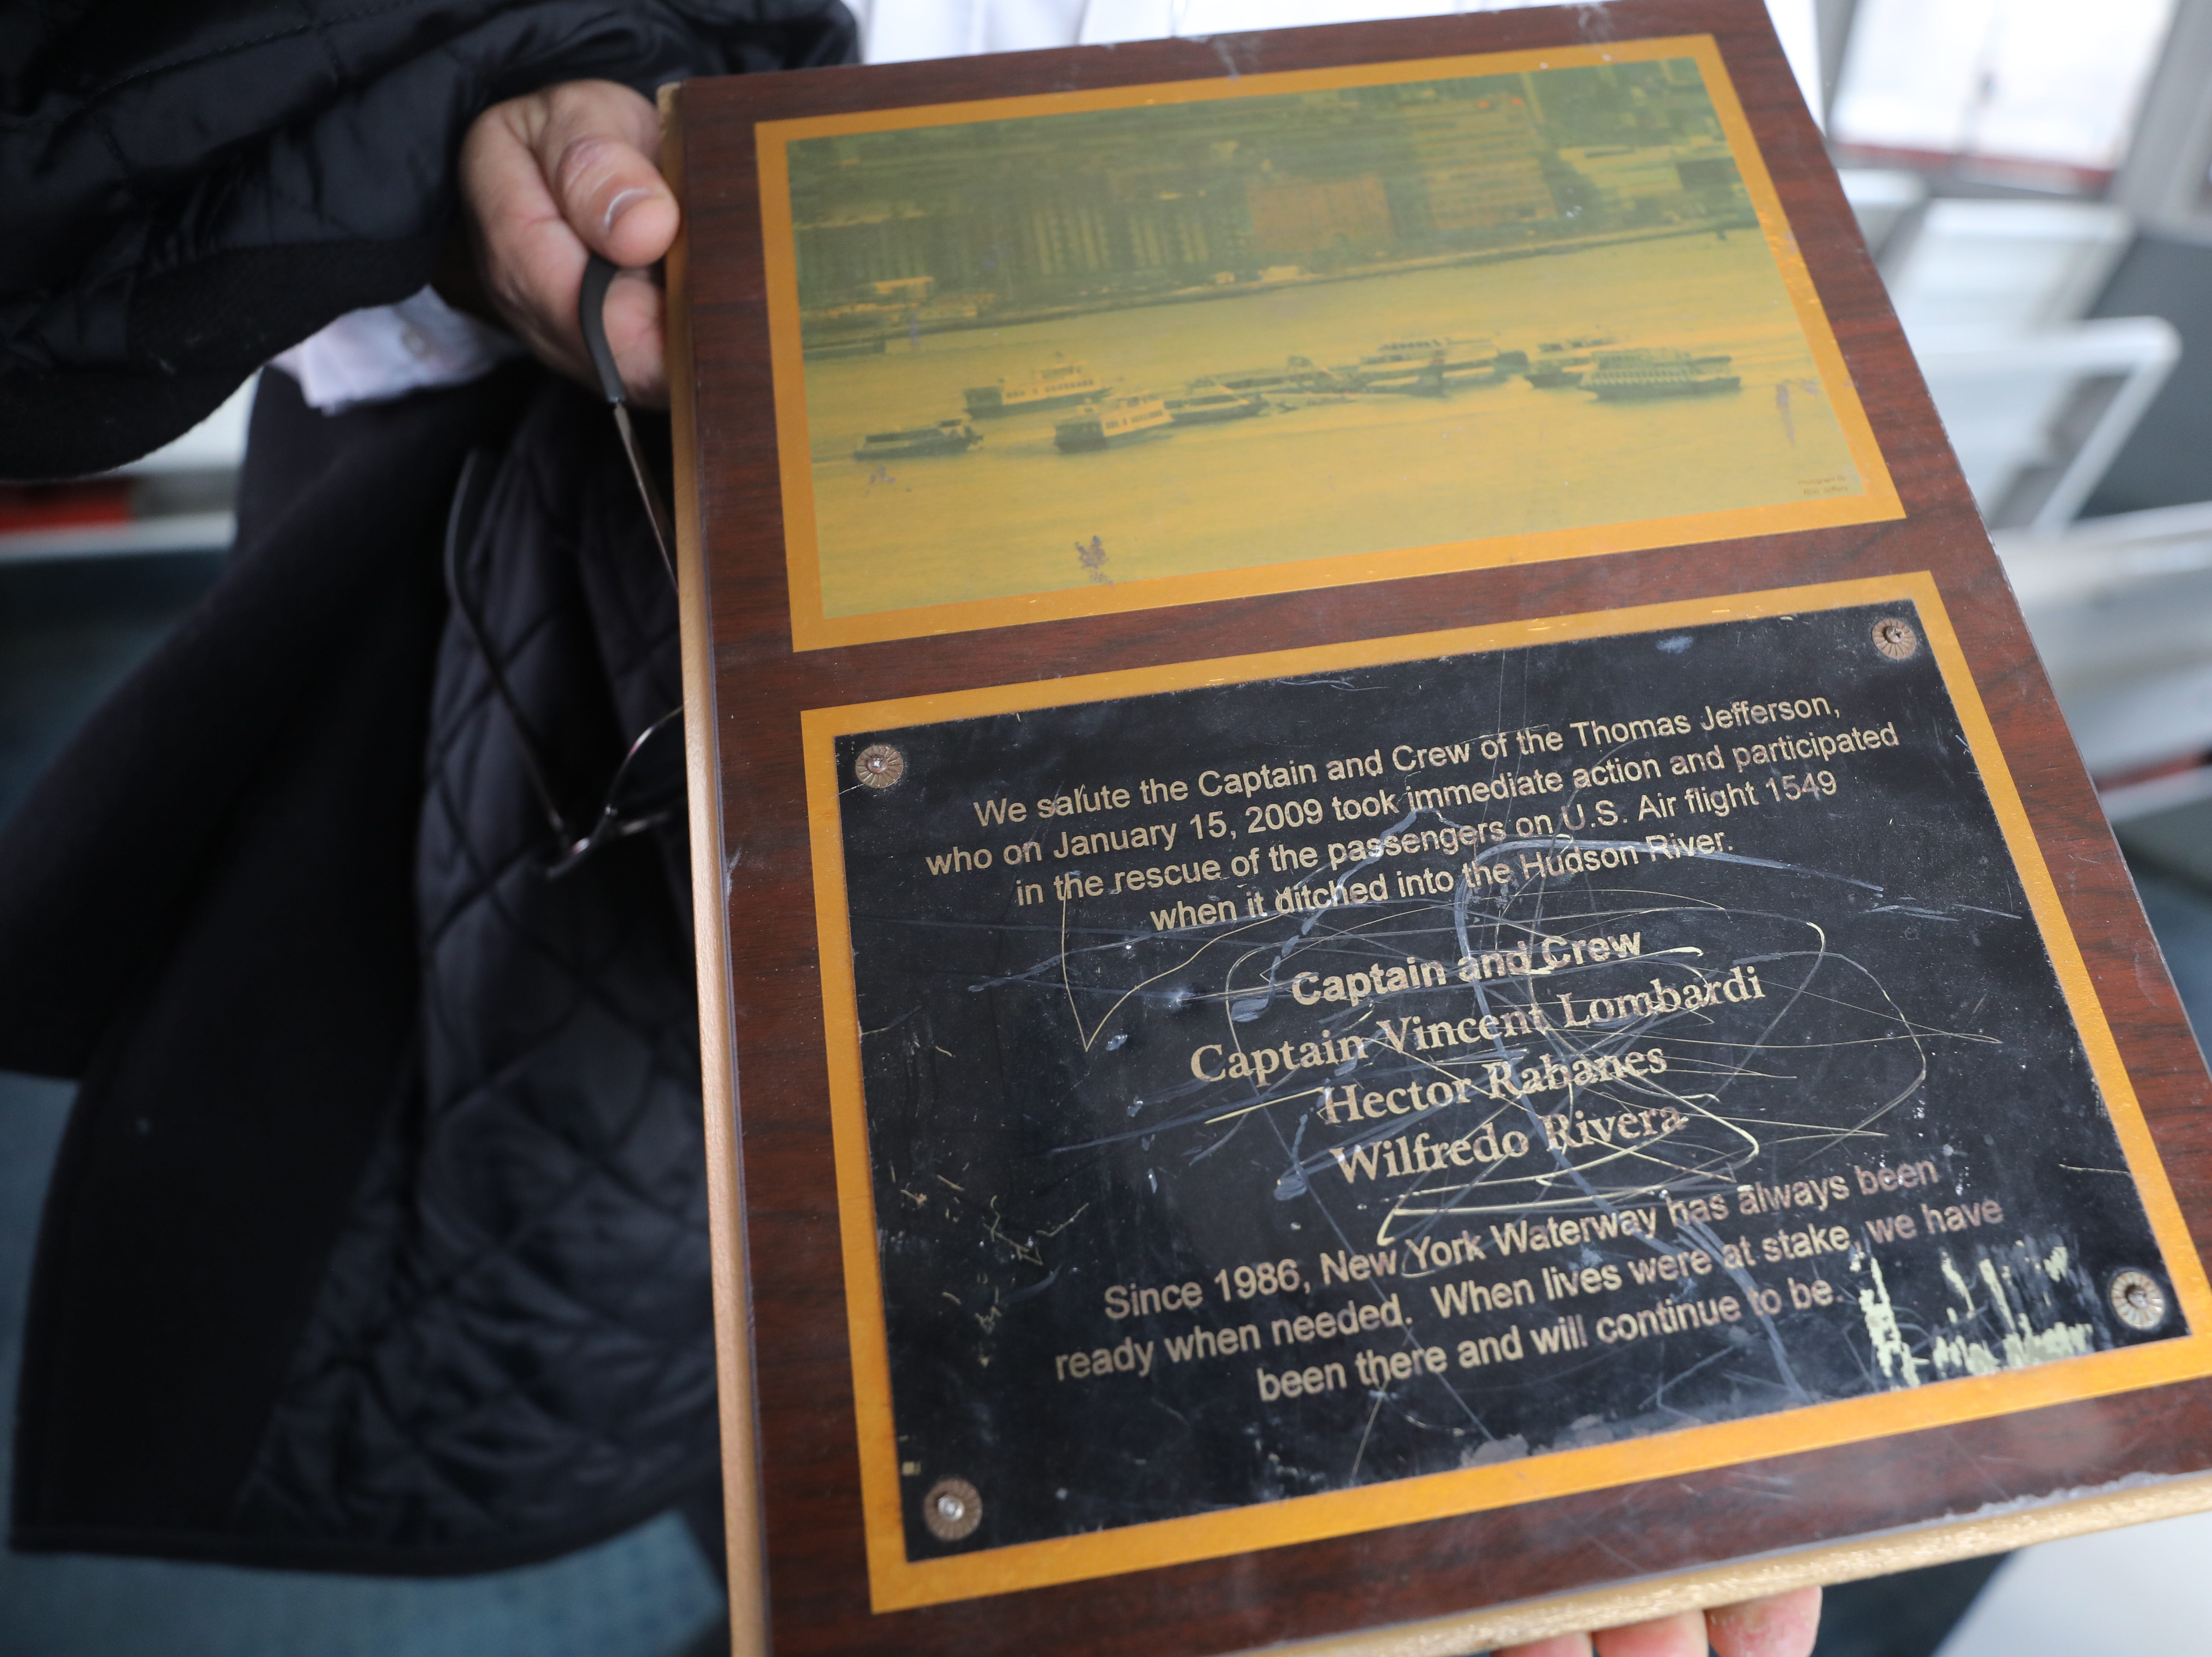 This is a plaque that used to be mounted inside the Thomas Jefferson commemorating the role it played on saving 54 passengers from the waters of the cold Hudson River on January 15, 2009.